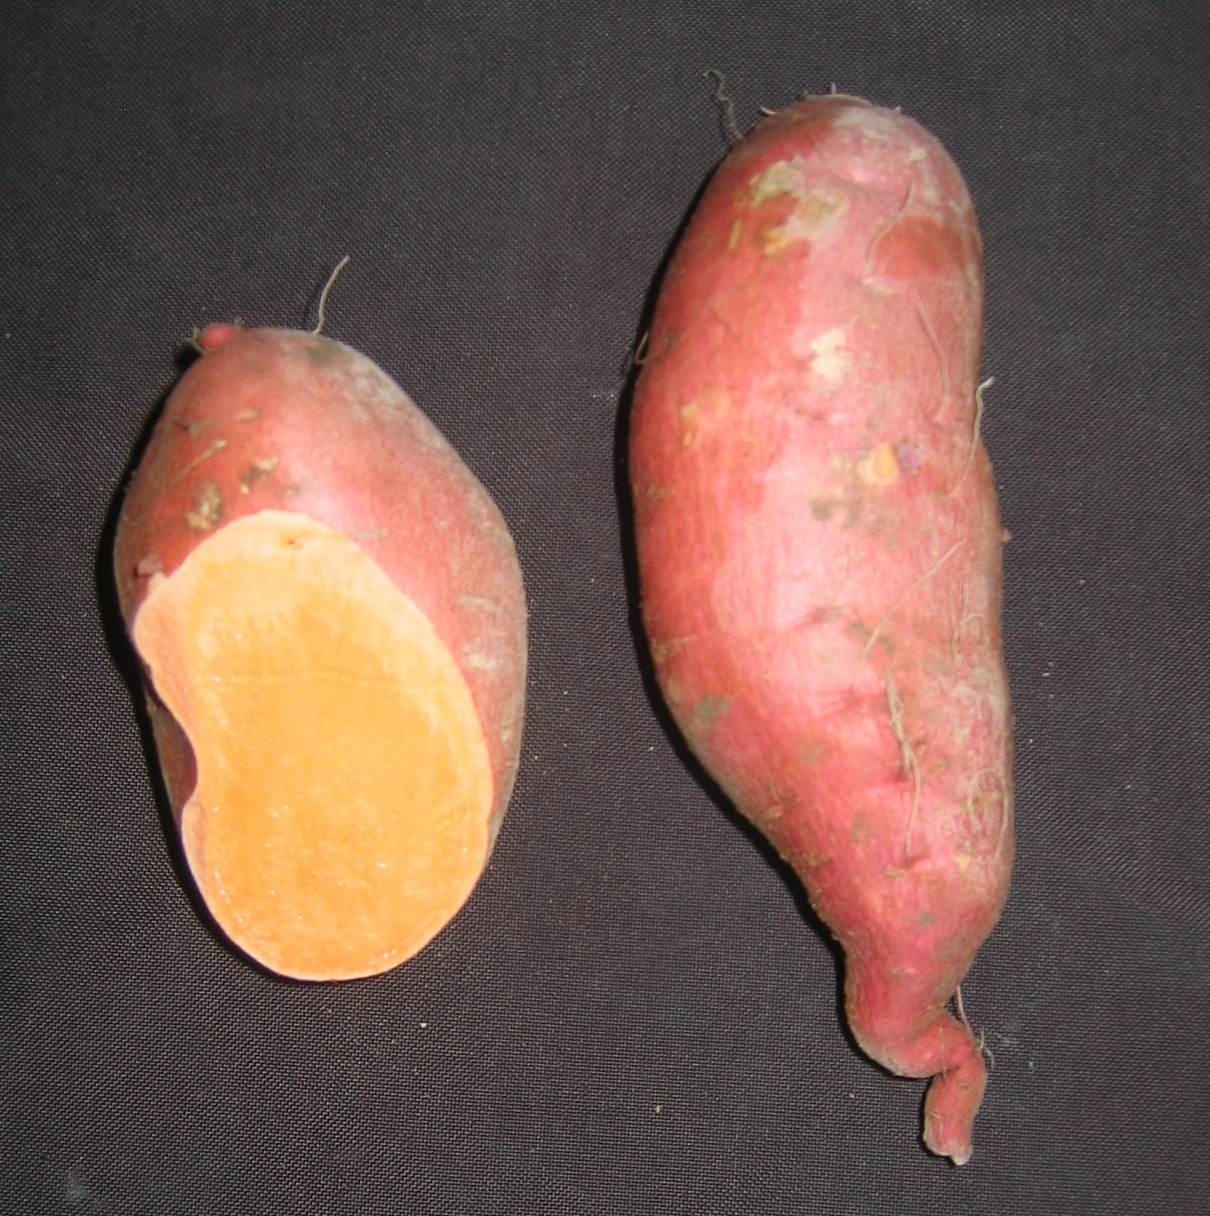 Two light rose skinned sweet potatoes. One has end cut revealing orange flesh.